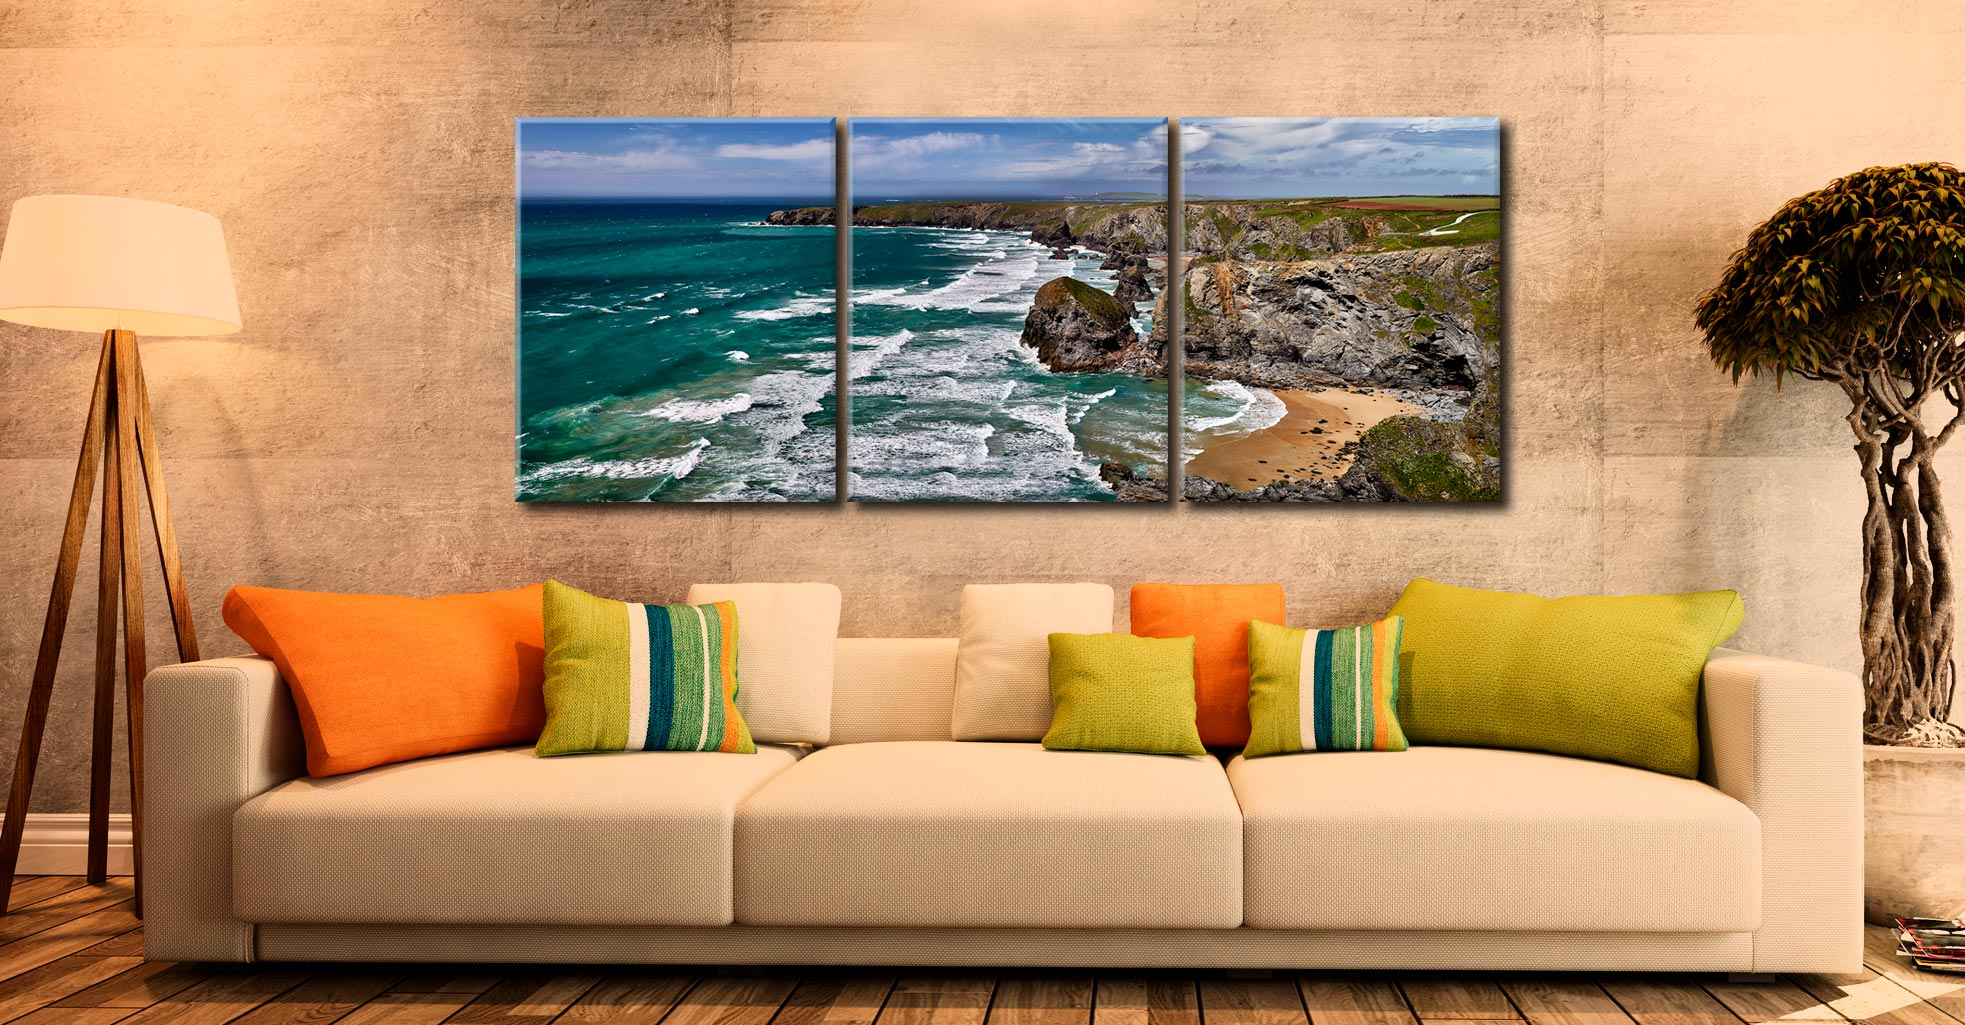 Summer Bedruthan Steps Panorama - 3 Panel Canvas on Wall